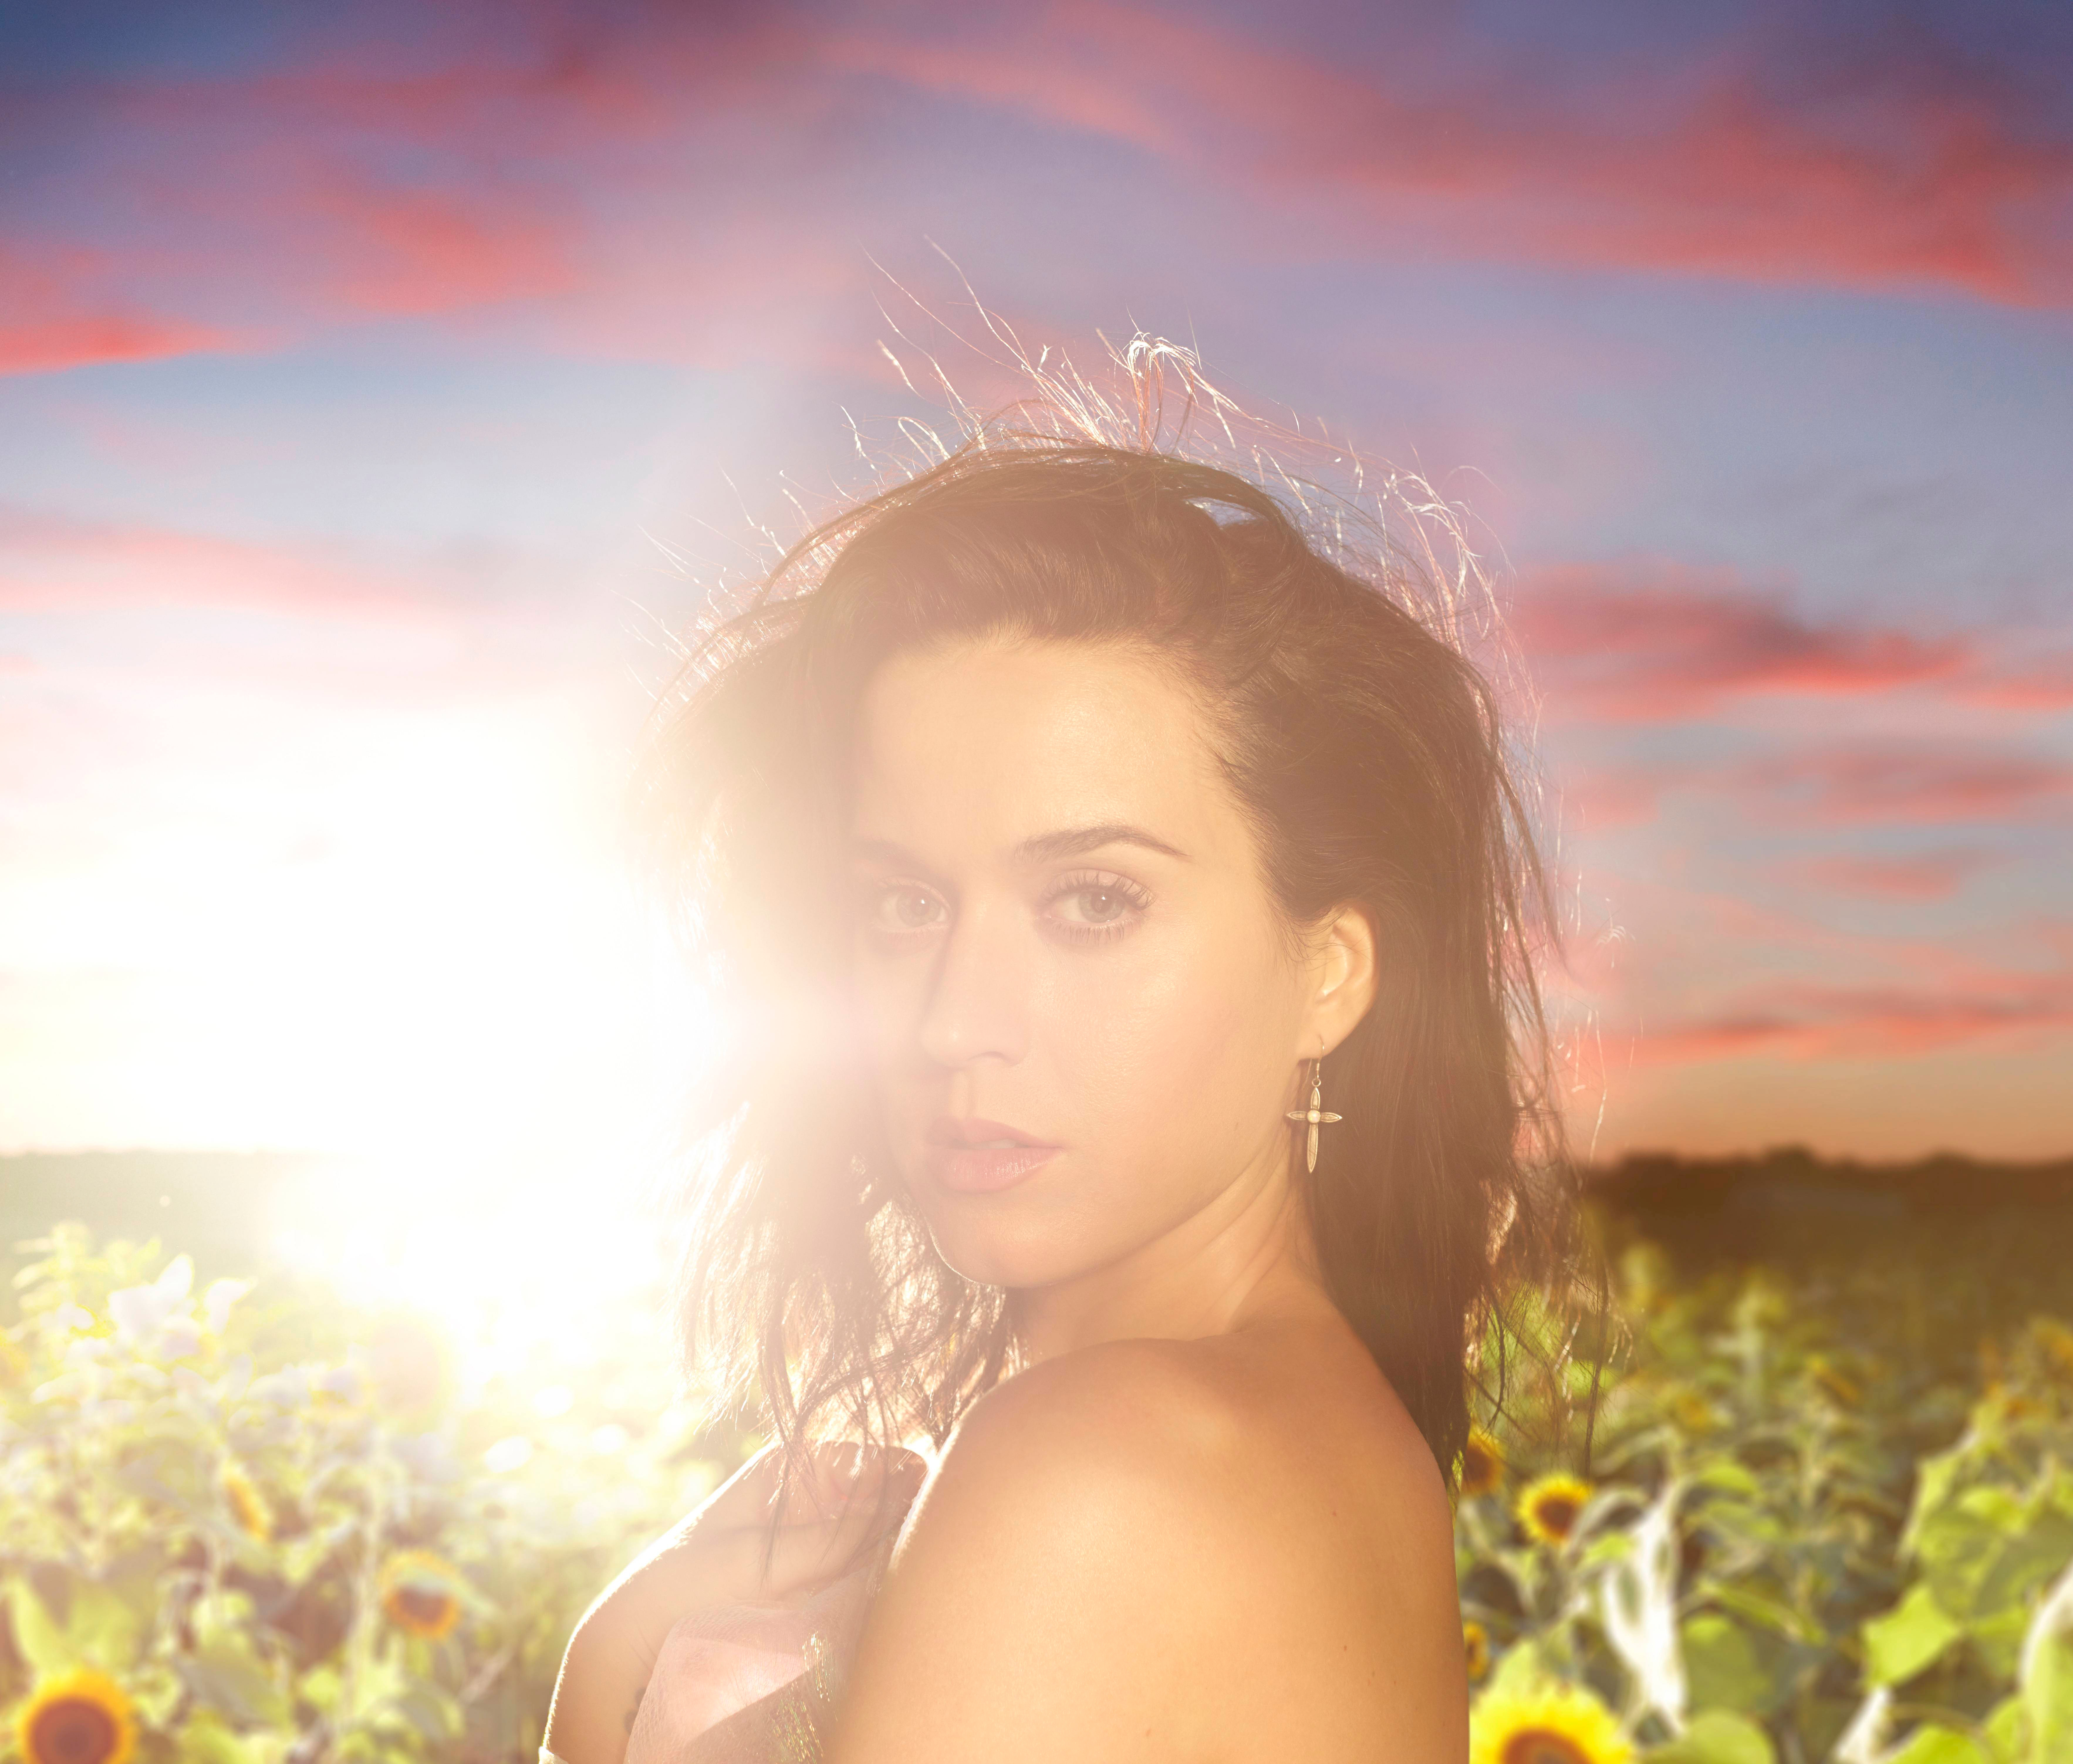 Wallpaper iphone katy perry - Katy Perry Hd